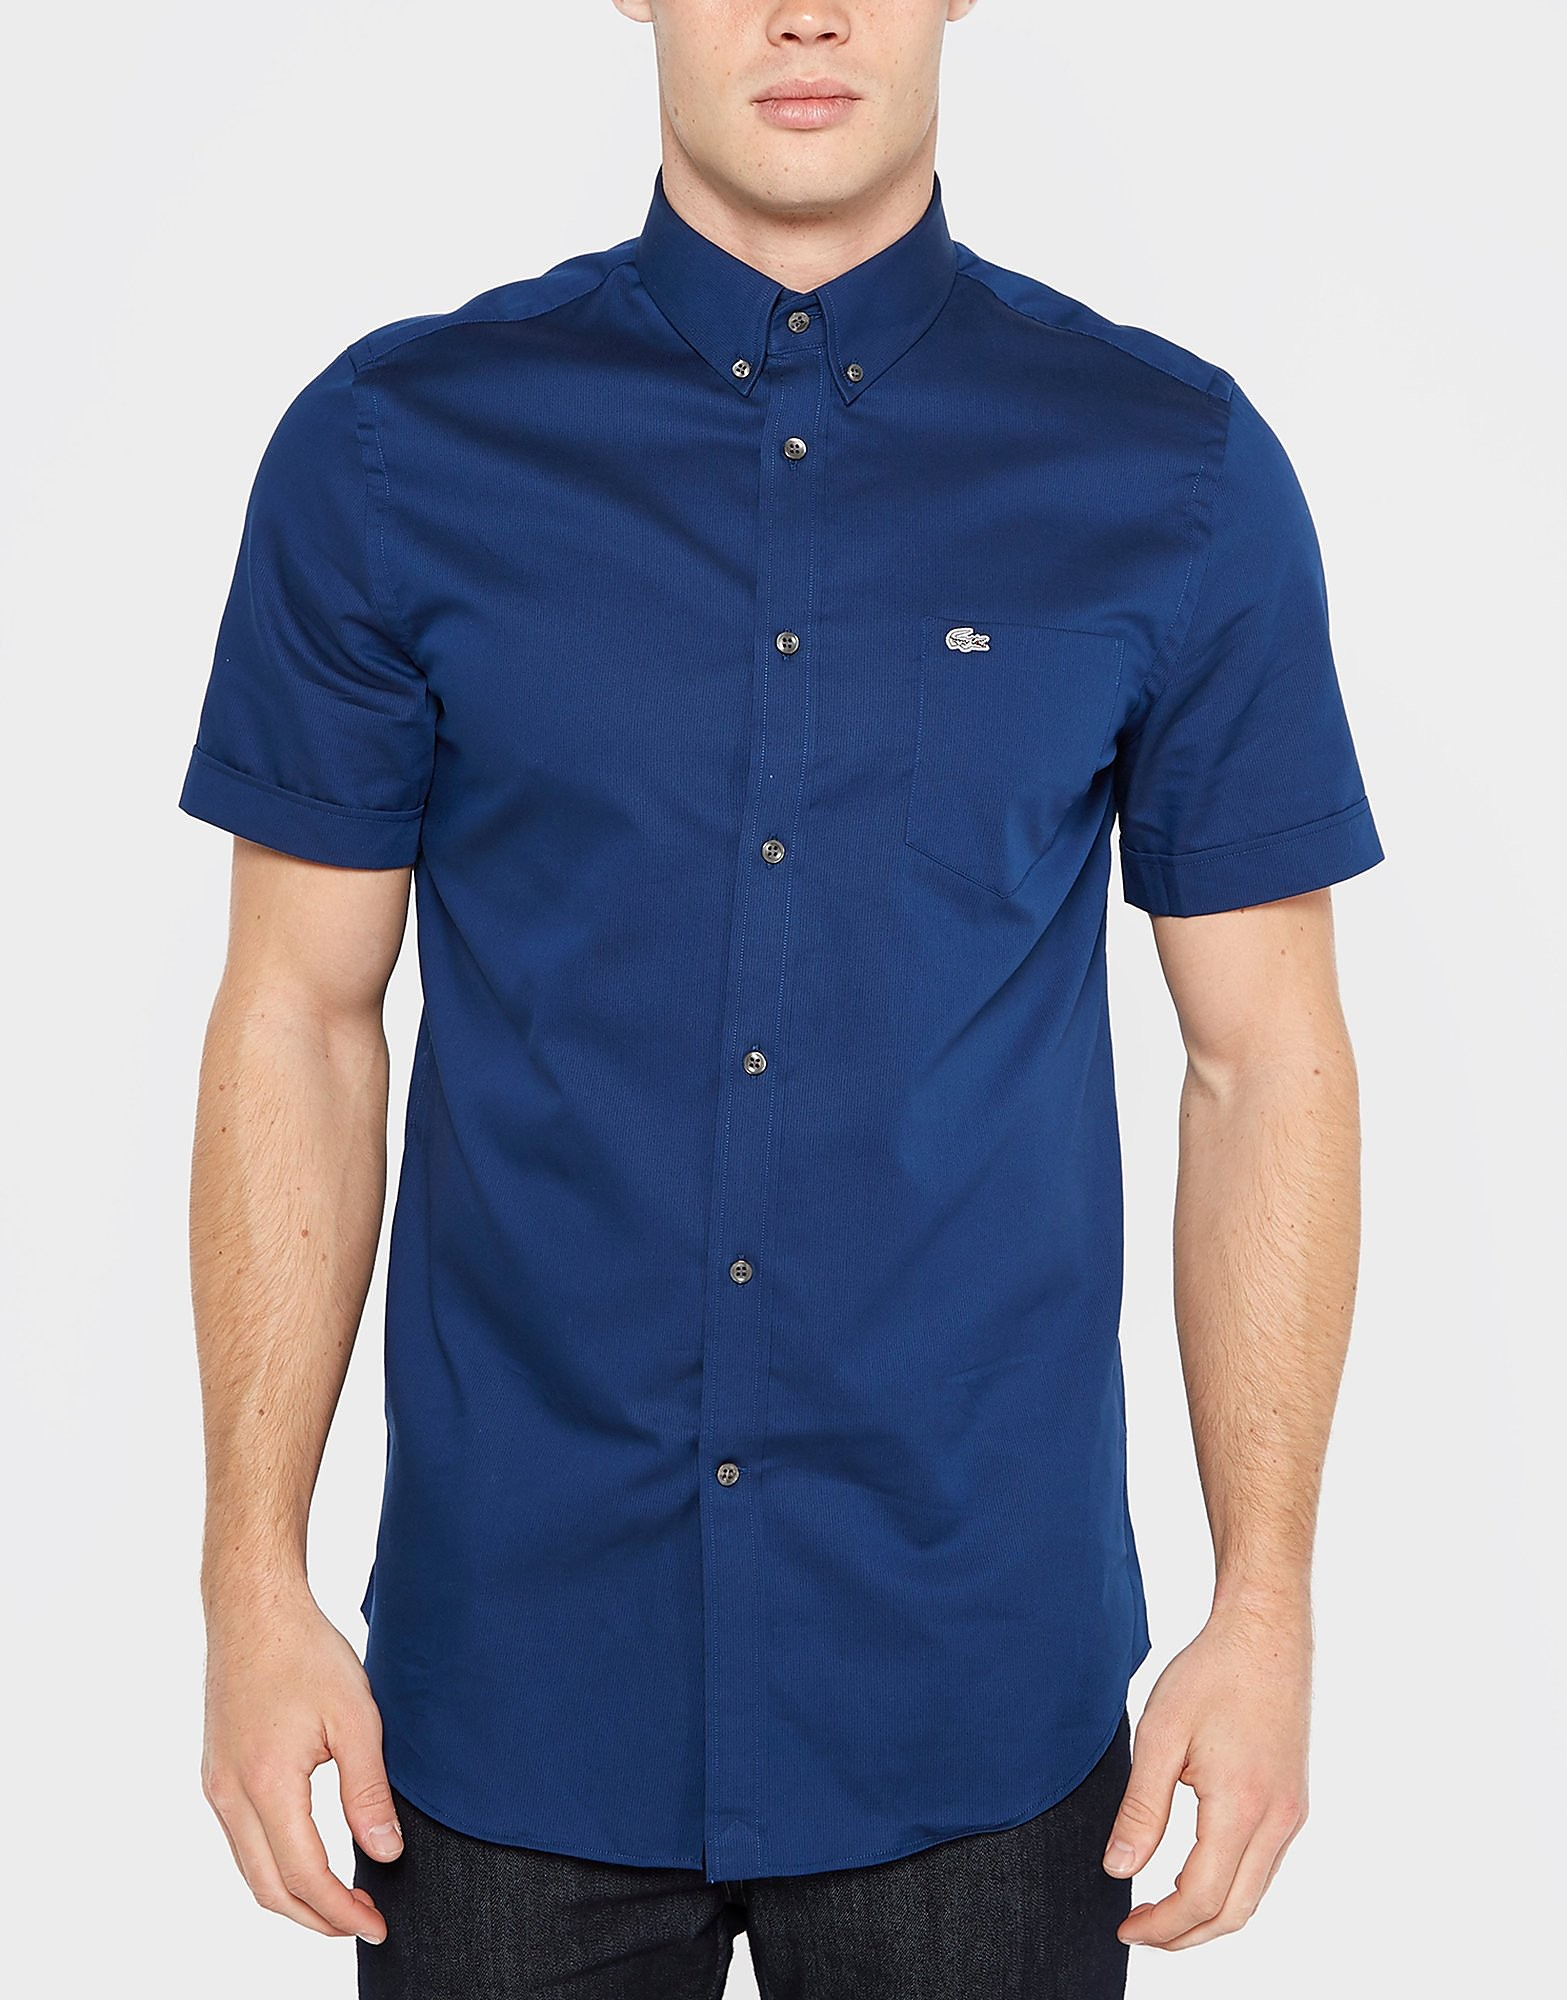 Lacoste Button Down Short Sleeve City Shirt